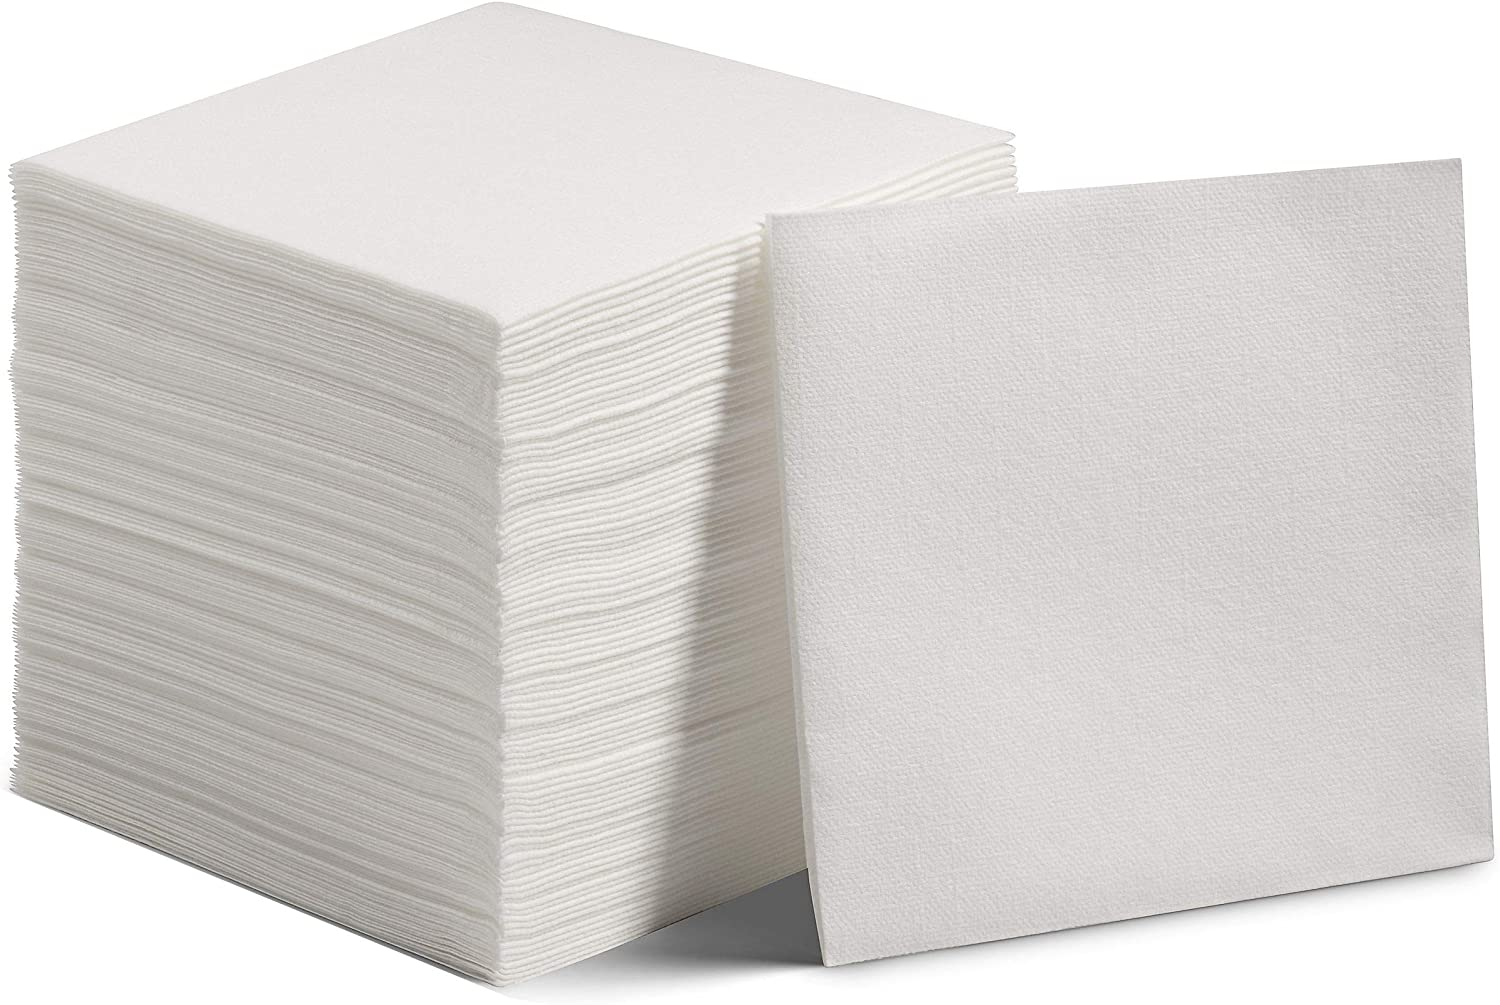 200 Linen-Feel Dessert And Beverage Napkins - Disposable Cloth-Like Cocktail Paper Napkins - Soft and Absorbent For Bar, Restaurant, Café, Wedding, Parties (200-Pack)